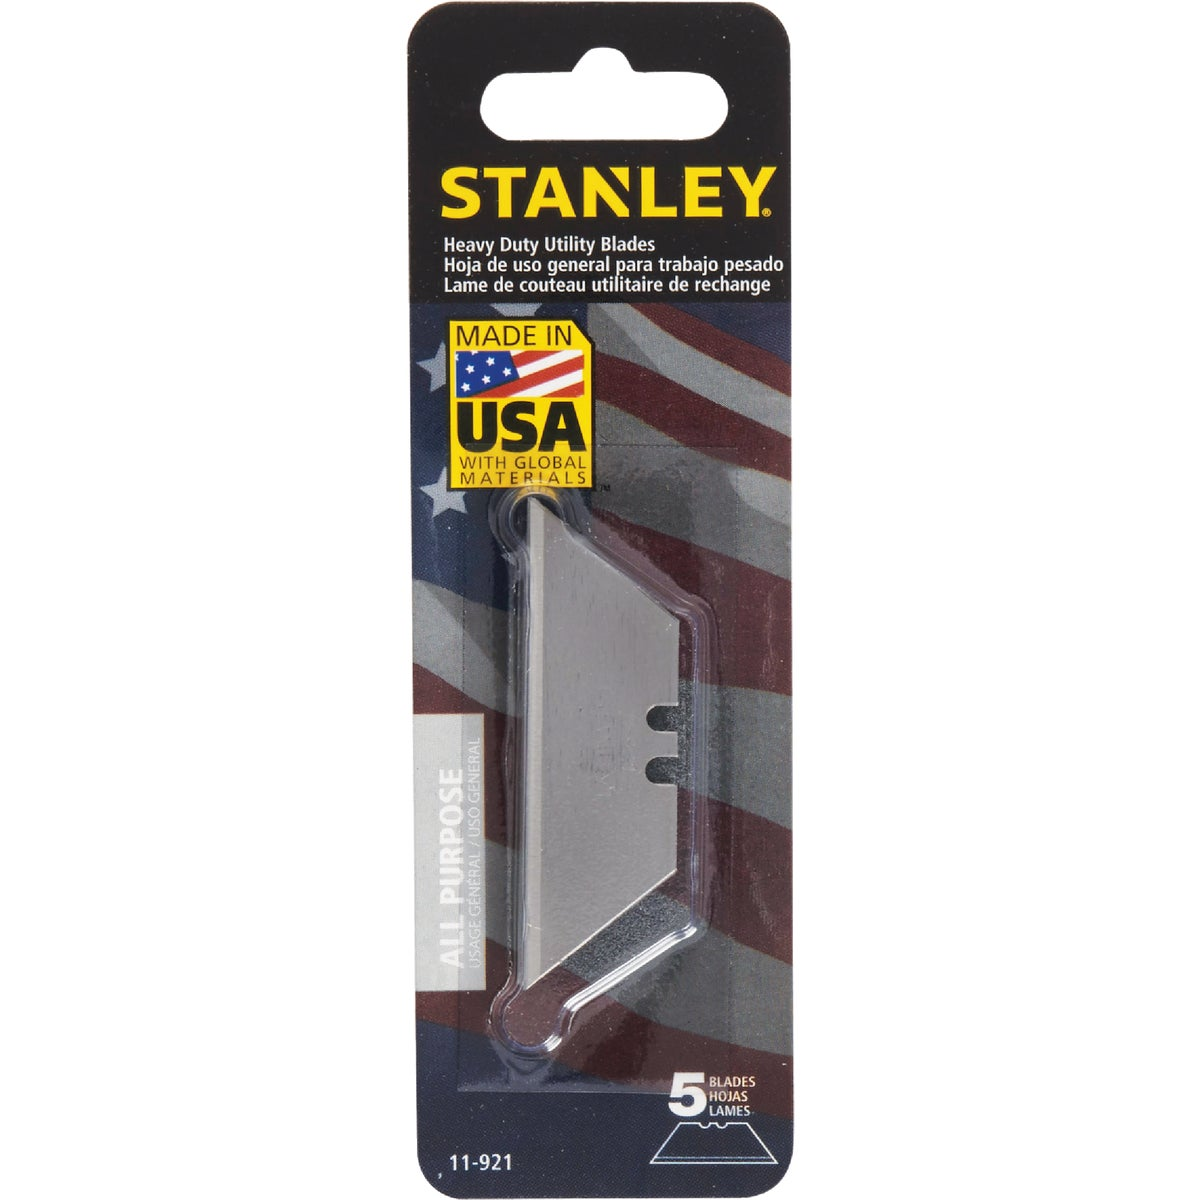 5PK KNIFE BLADE - 11-921 by Stanley Tools